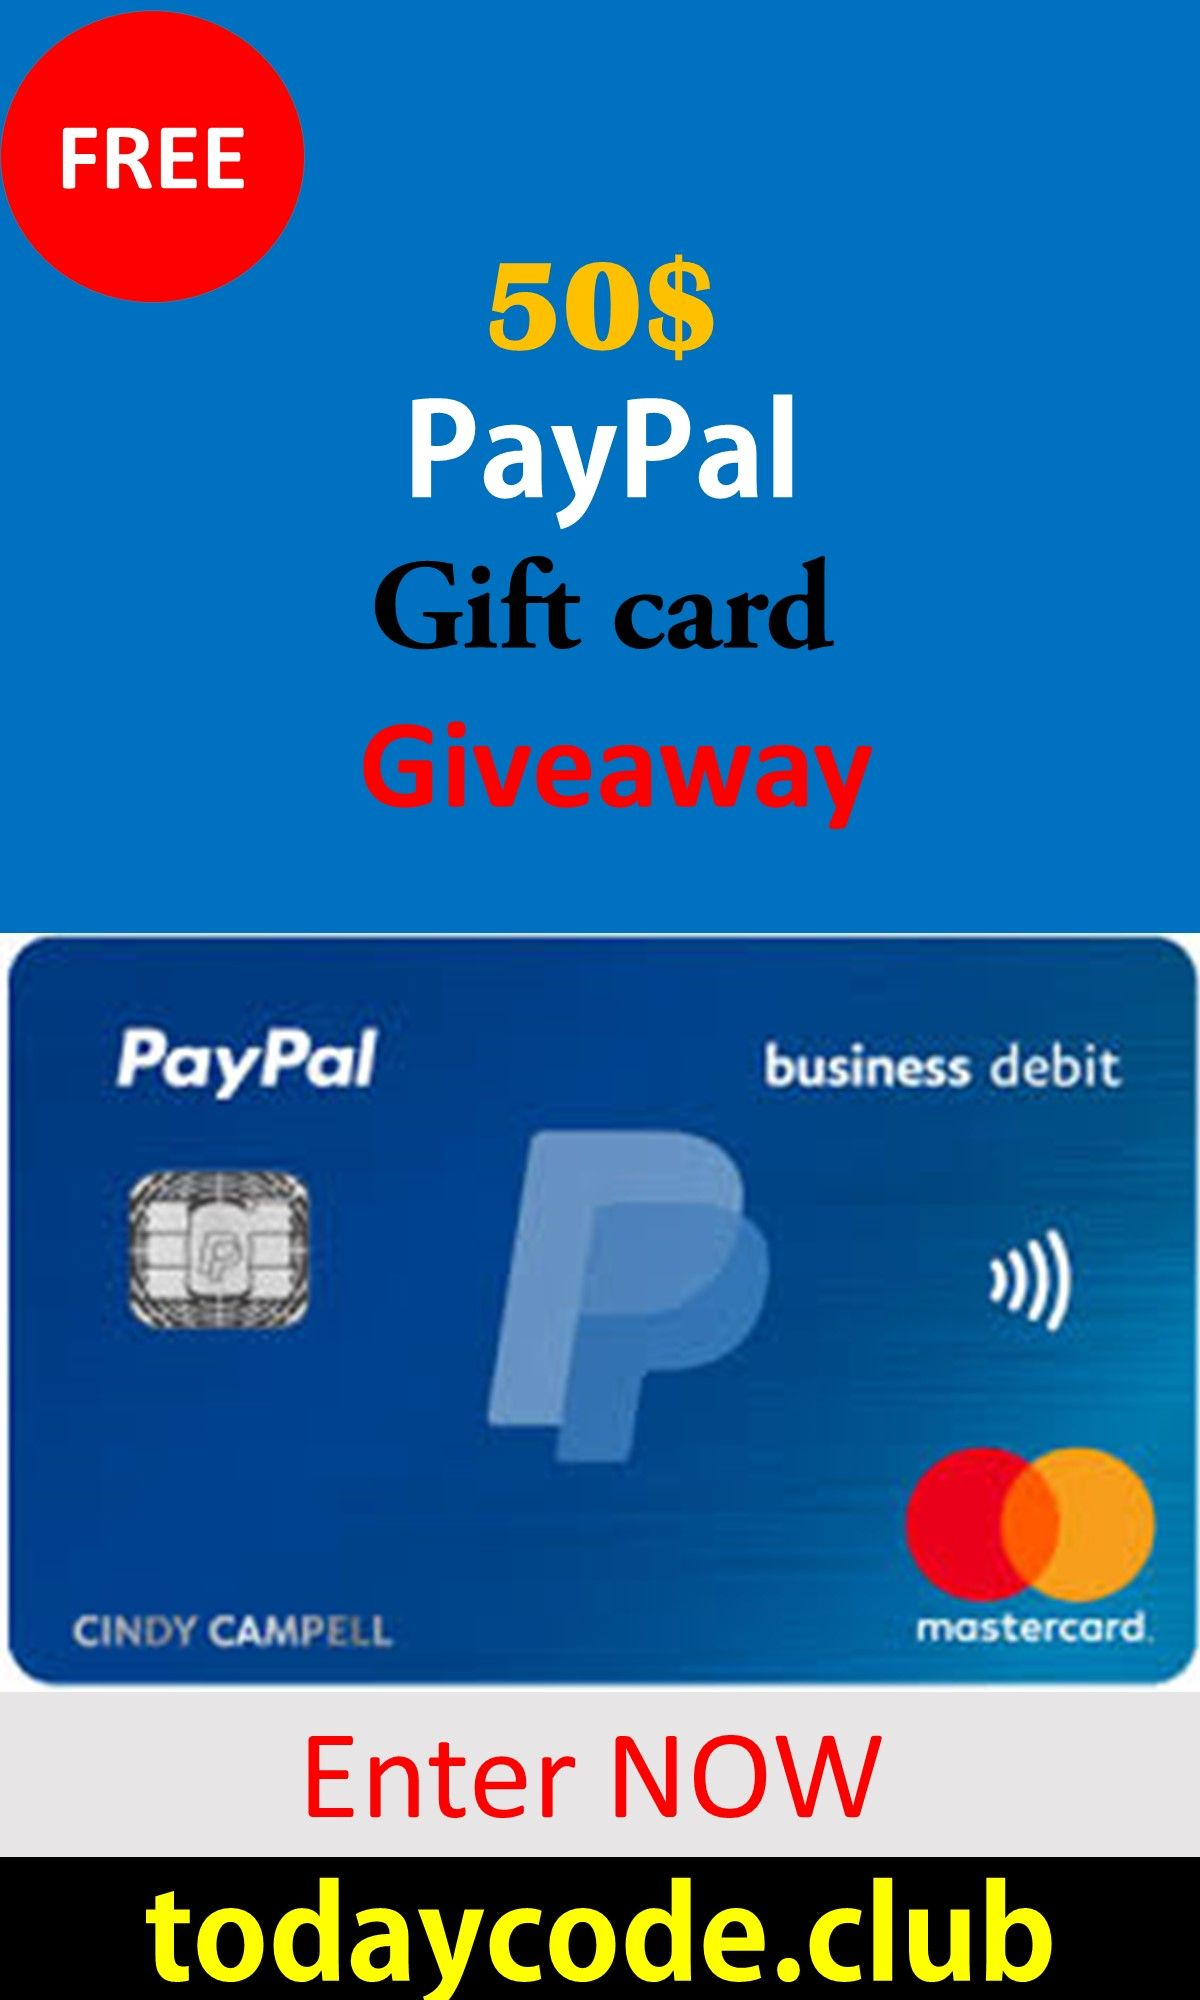 Free Paypal Gift Card How To Get Free Paypal 50 Gift Card Paypal Gift Card Gift Card Exchange Amazon Gift Card Free